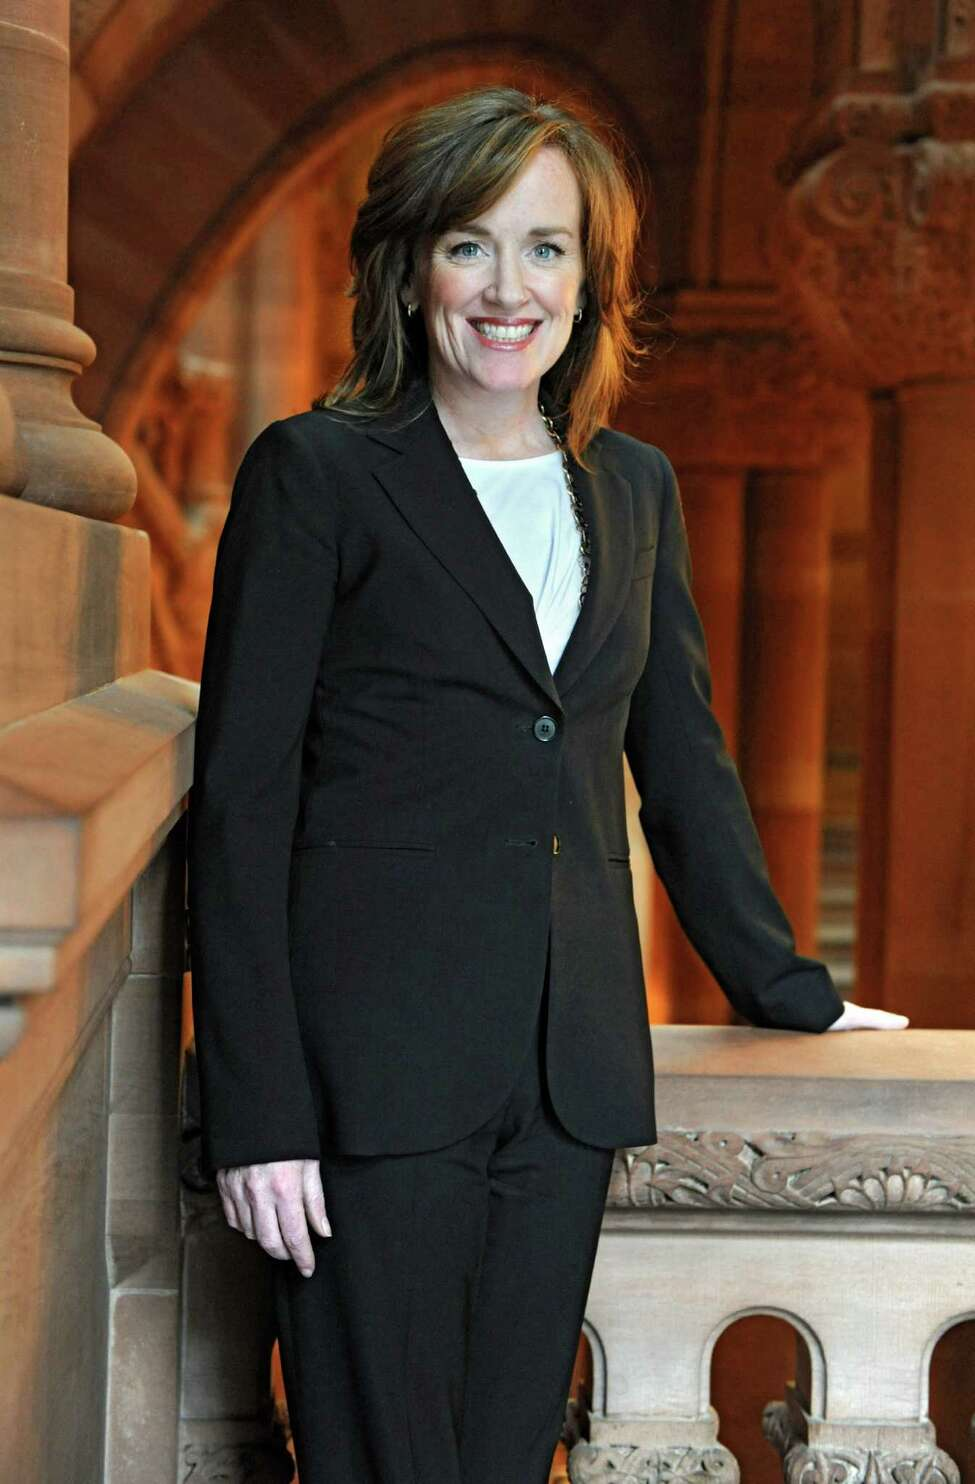 Nassau County District Attorney Kathleen Rice stands near the stairs inside the Capitol on Wednesday March 6, 2013 in Albany, N.Y. Rice is leading efforts to change the way New York schools report incidents of violence and bullying. Schools self-report their violence incidents and few are reporting any incidents at all. (Lori Van Buren / Times Union)